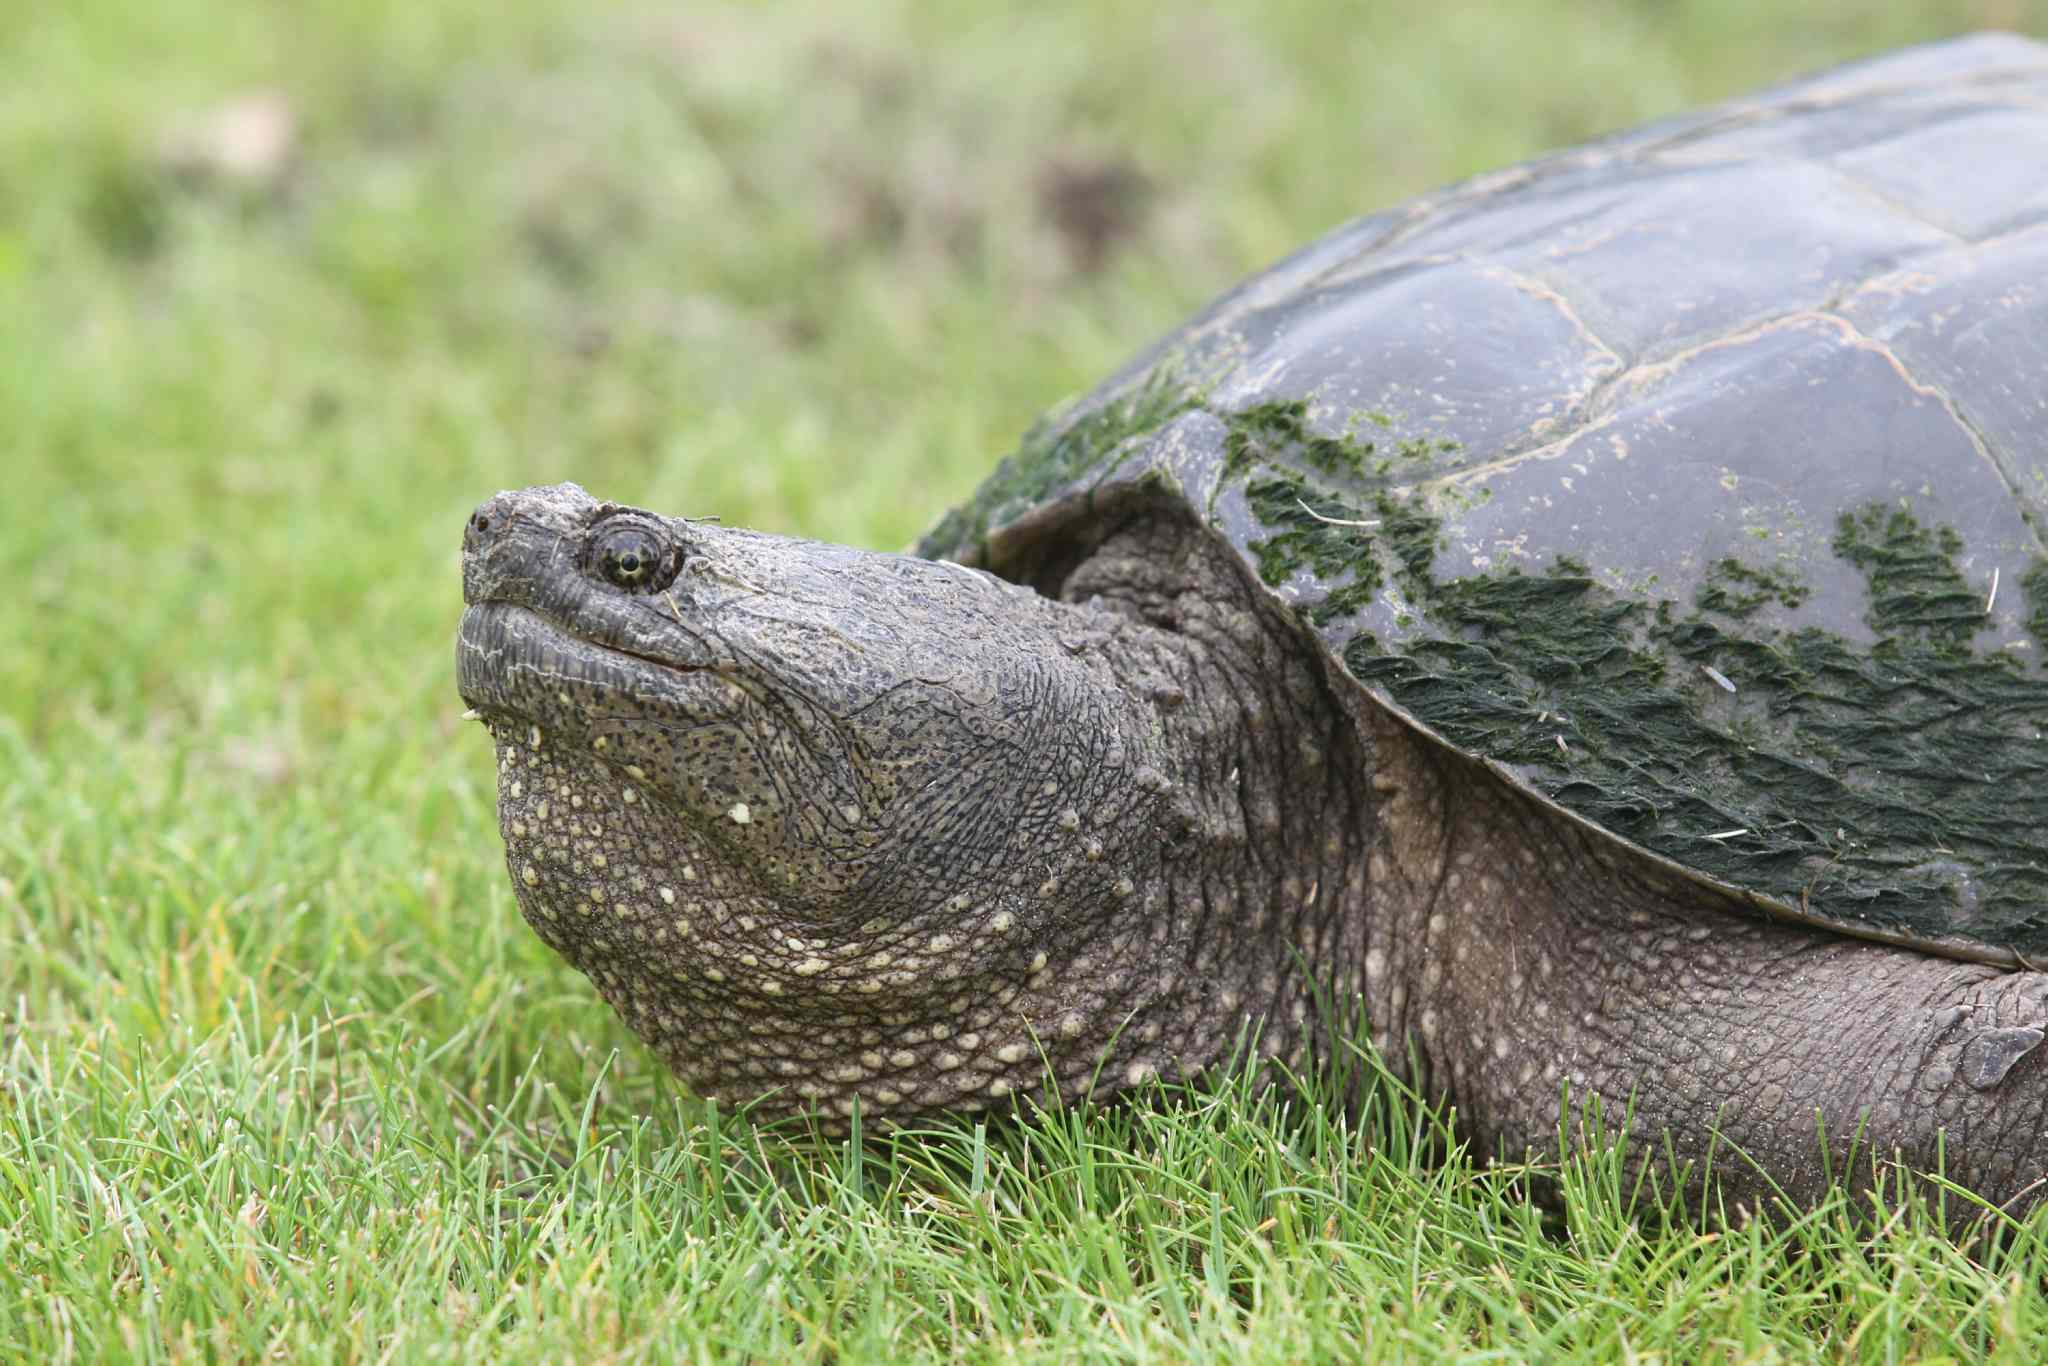 10. (i) all members of the family Chelydridae, including snapping turtle and alligator snapping turtle.